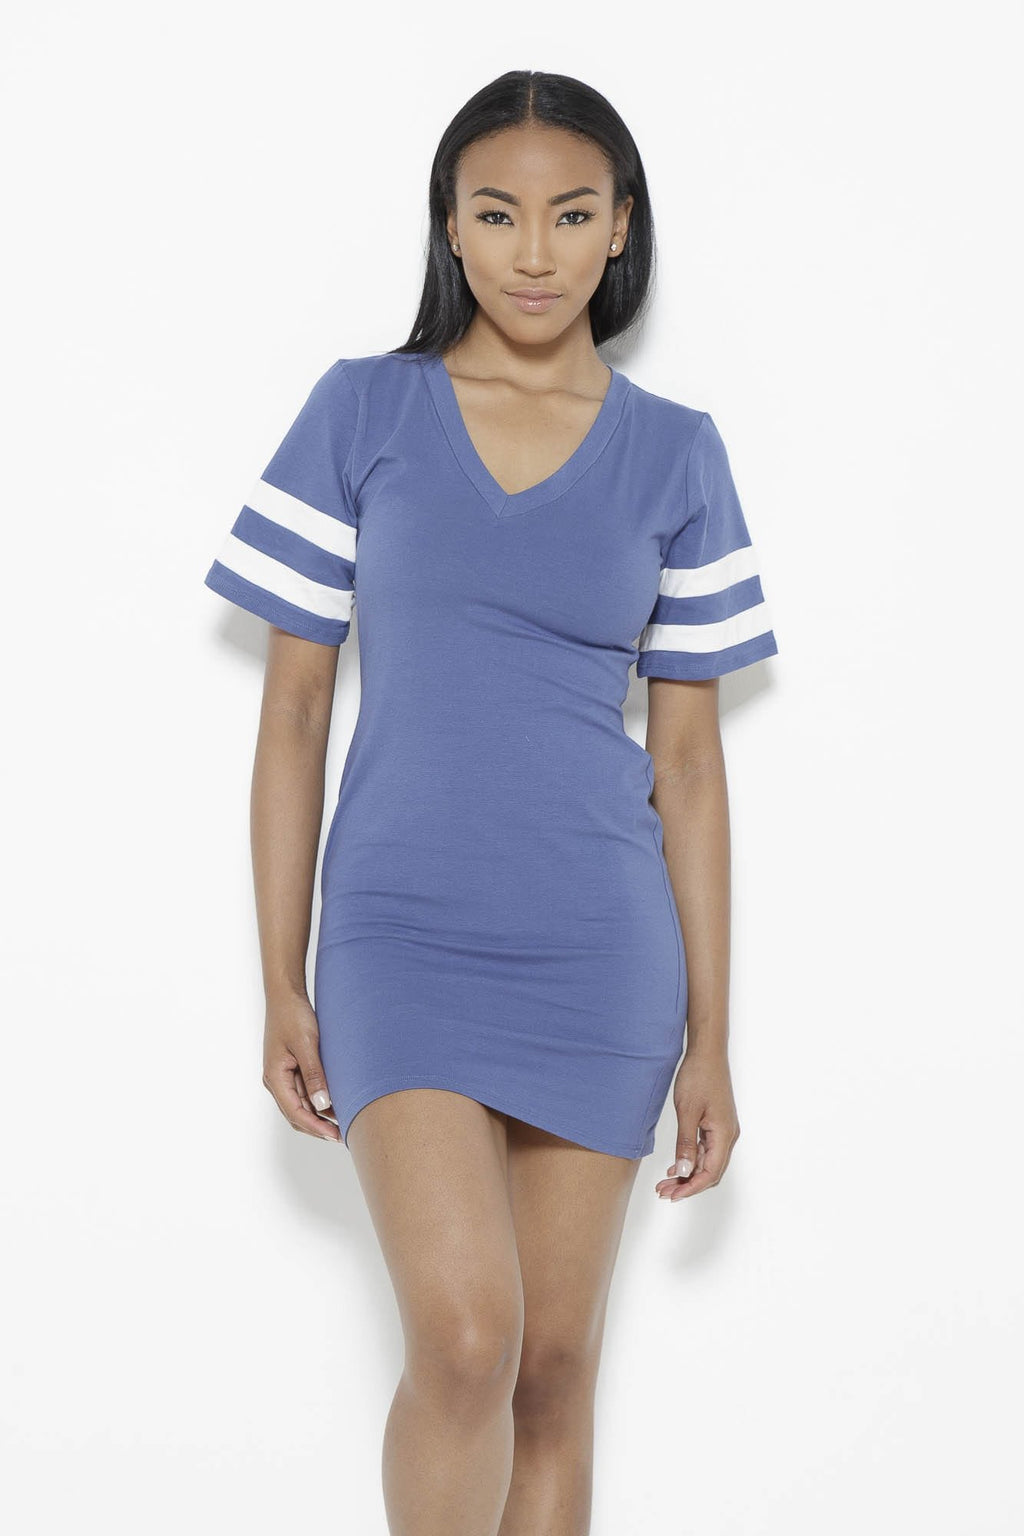 fair-shade - Instant Replay Dress-Blue - Clothing